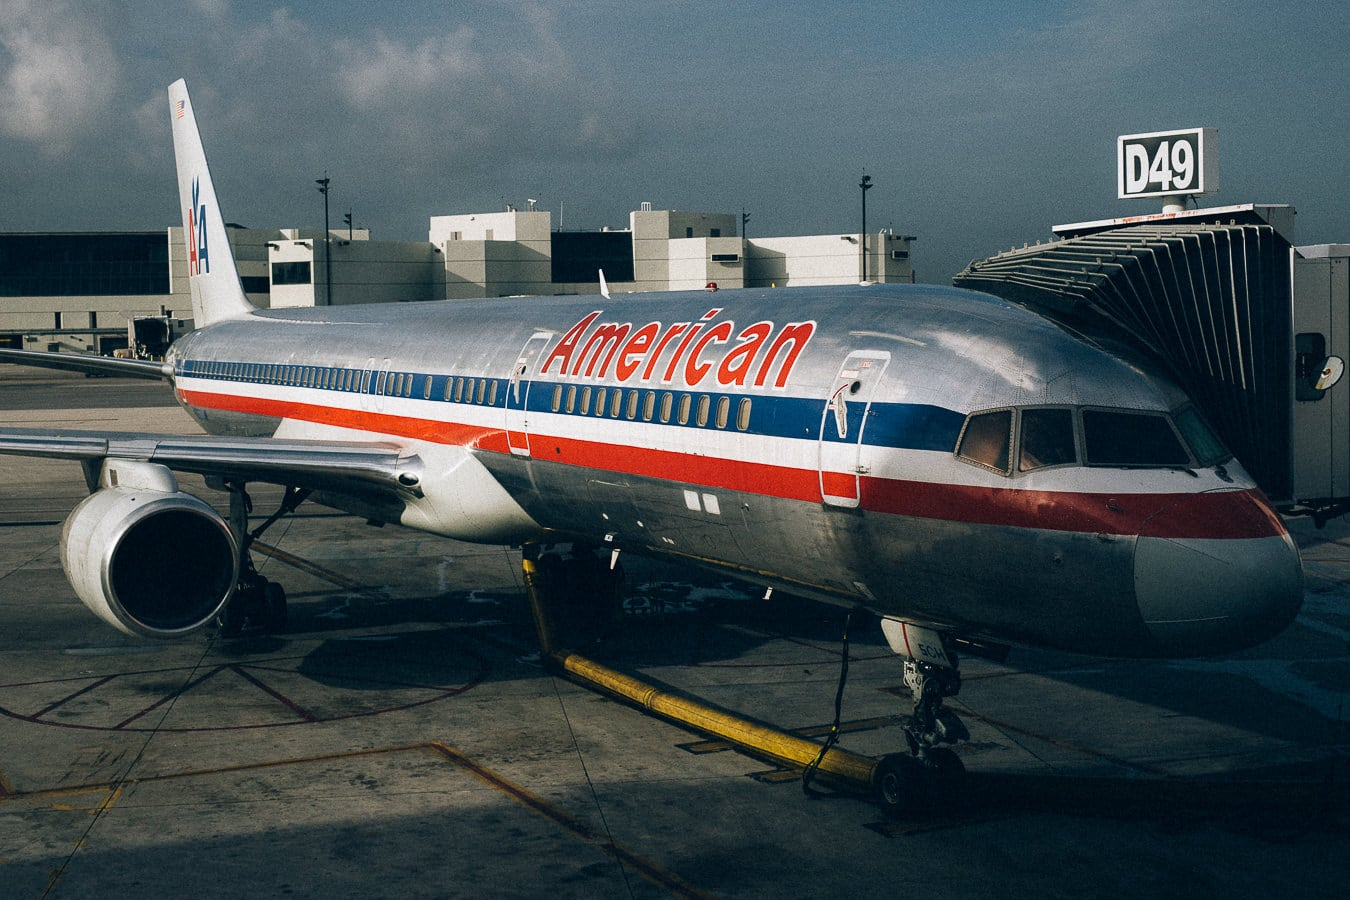 American Airlines Airplane at MIA